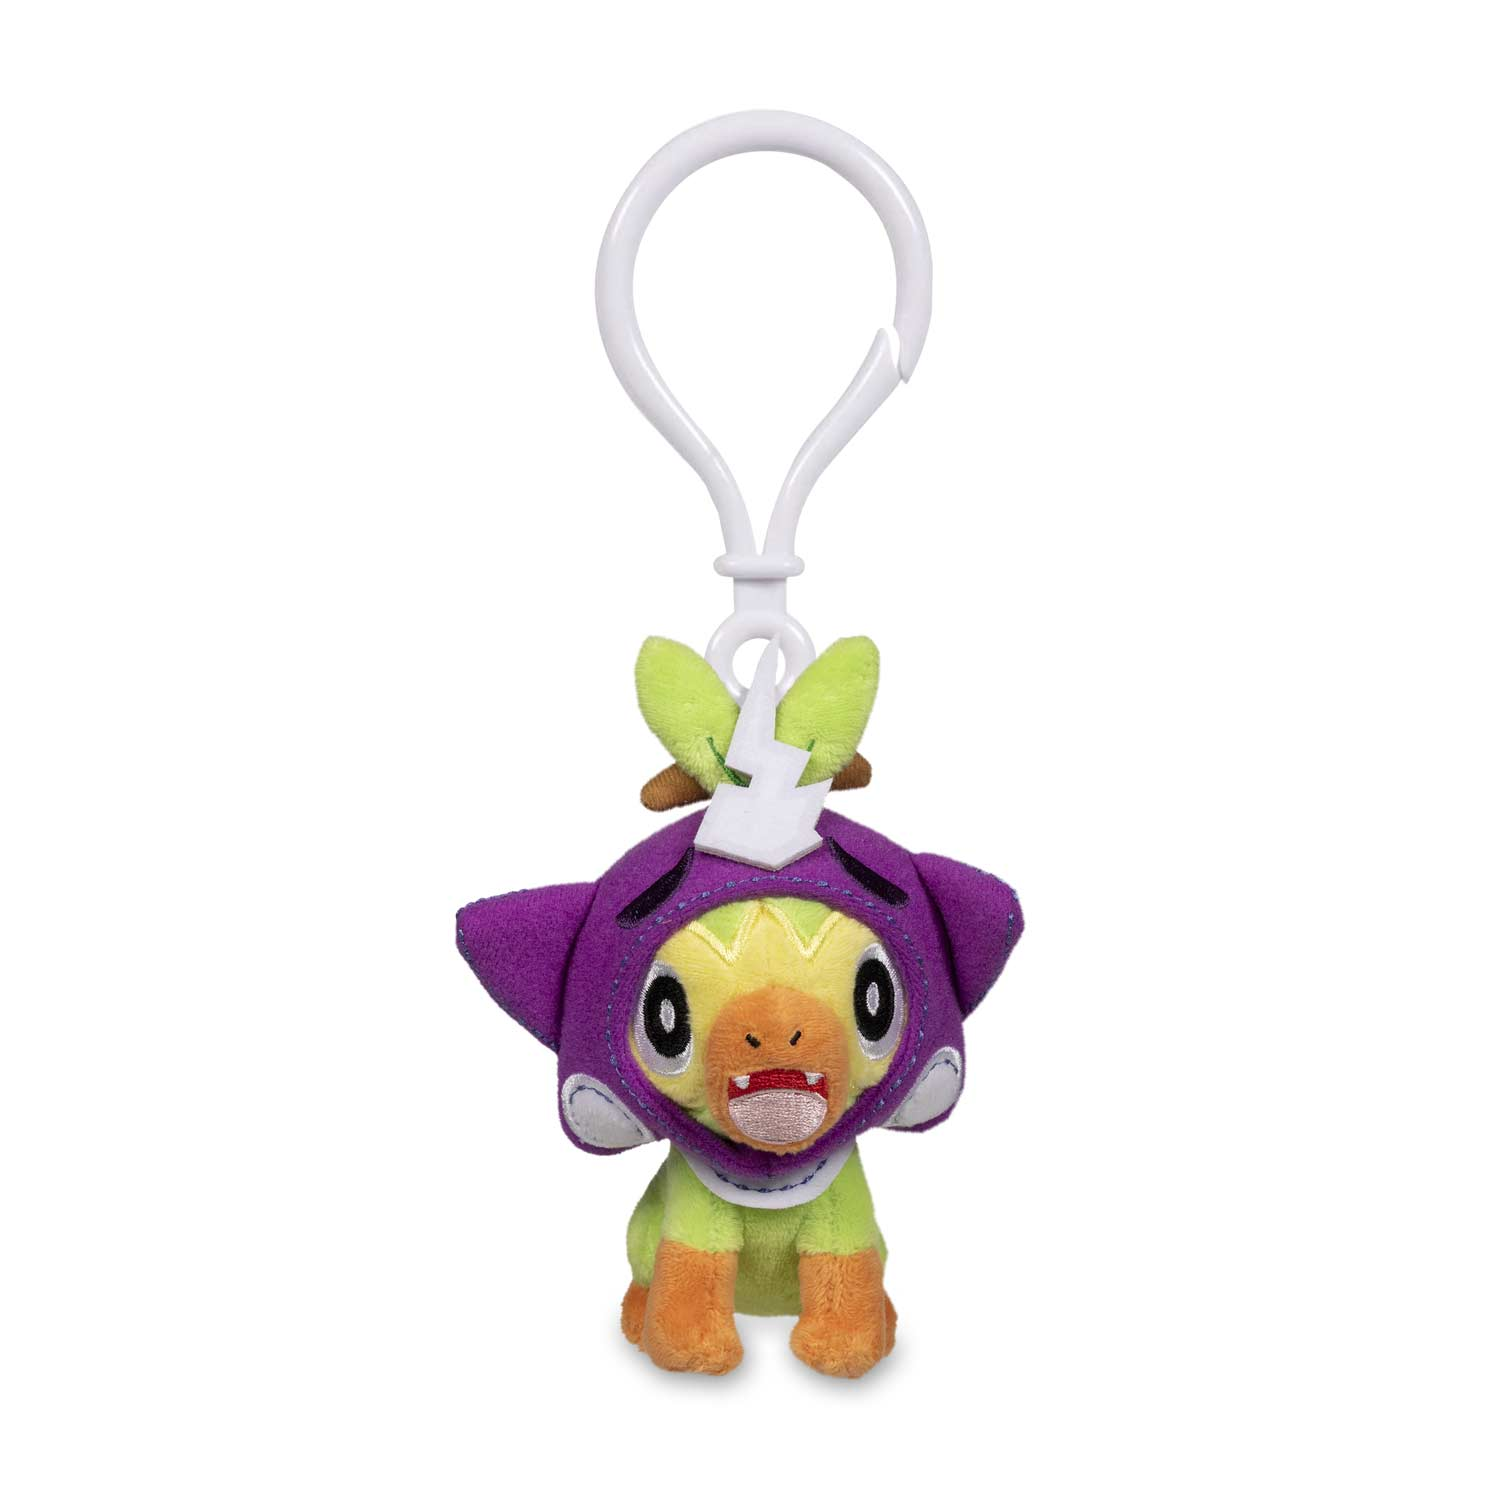 Grookey_Pokemon_Pumpkin_Party_Poke_Plush_Key_Chain_Product_Image.jpg